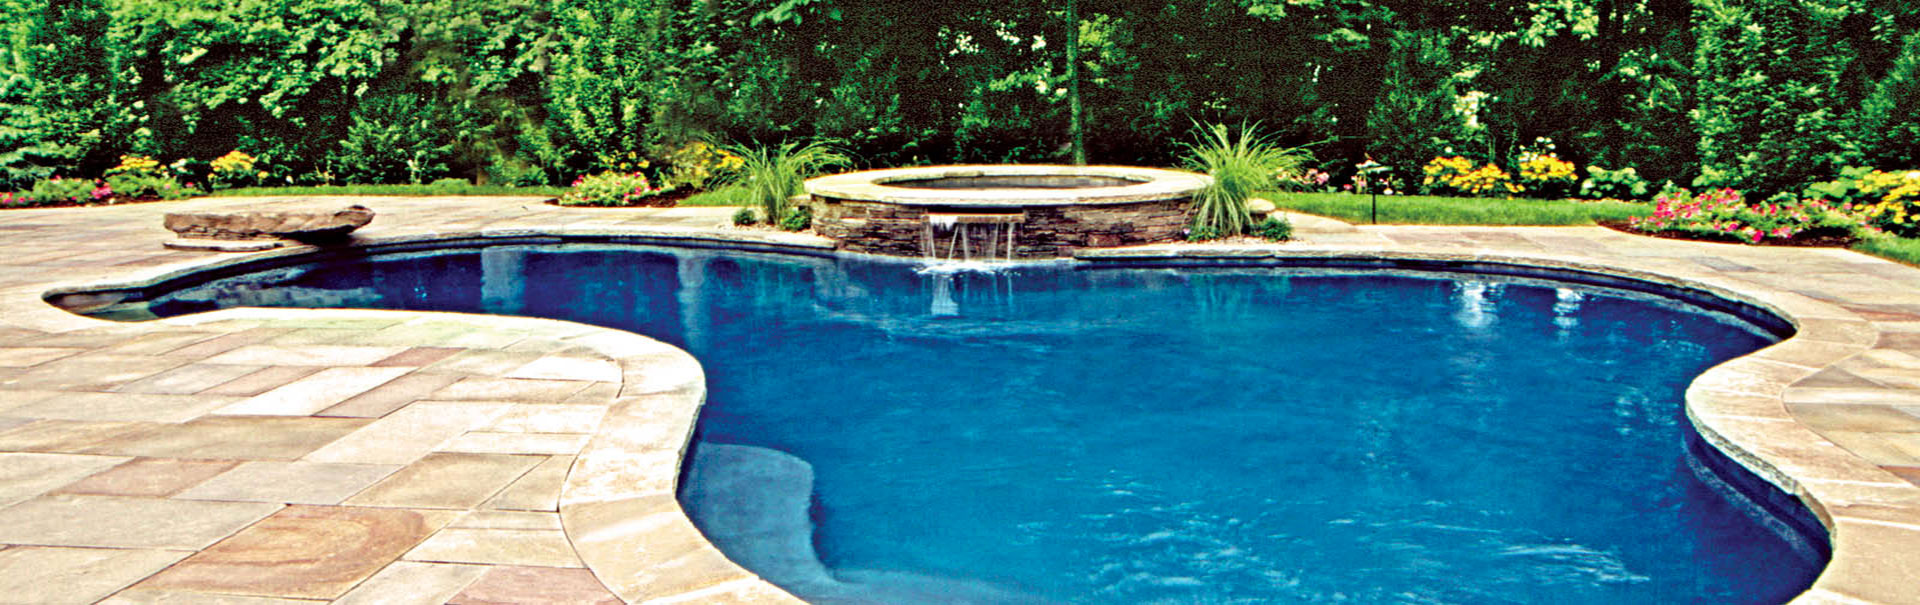 Hudson Valley Swimming Pool Builder